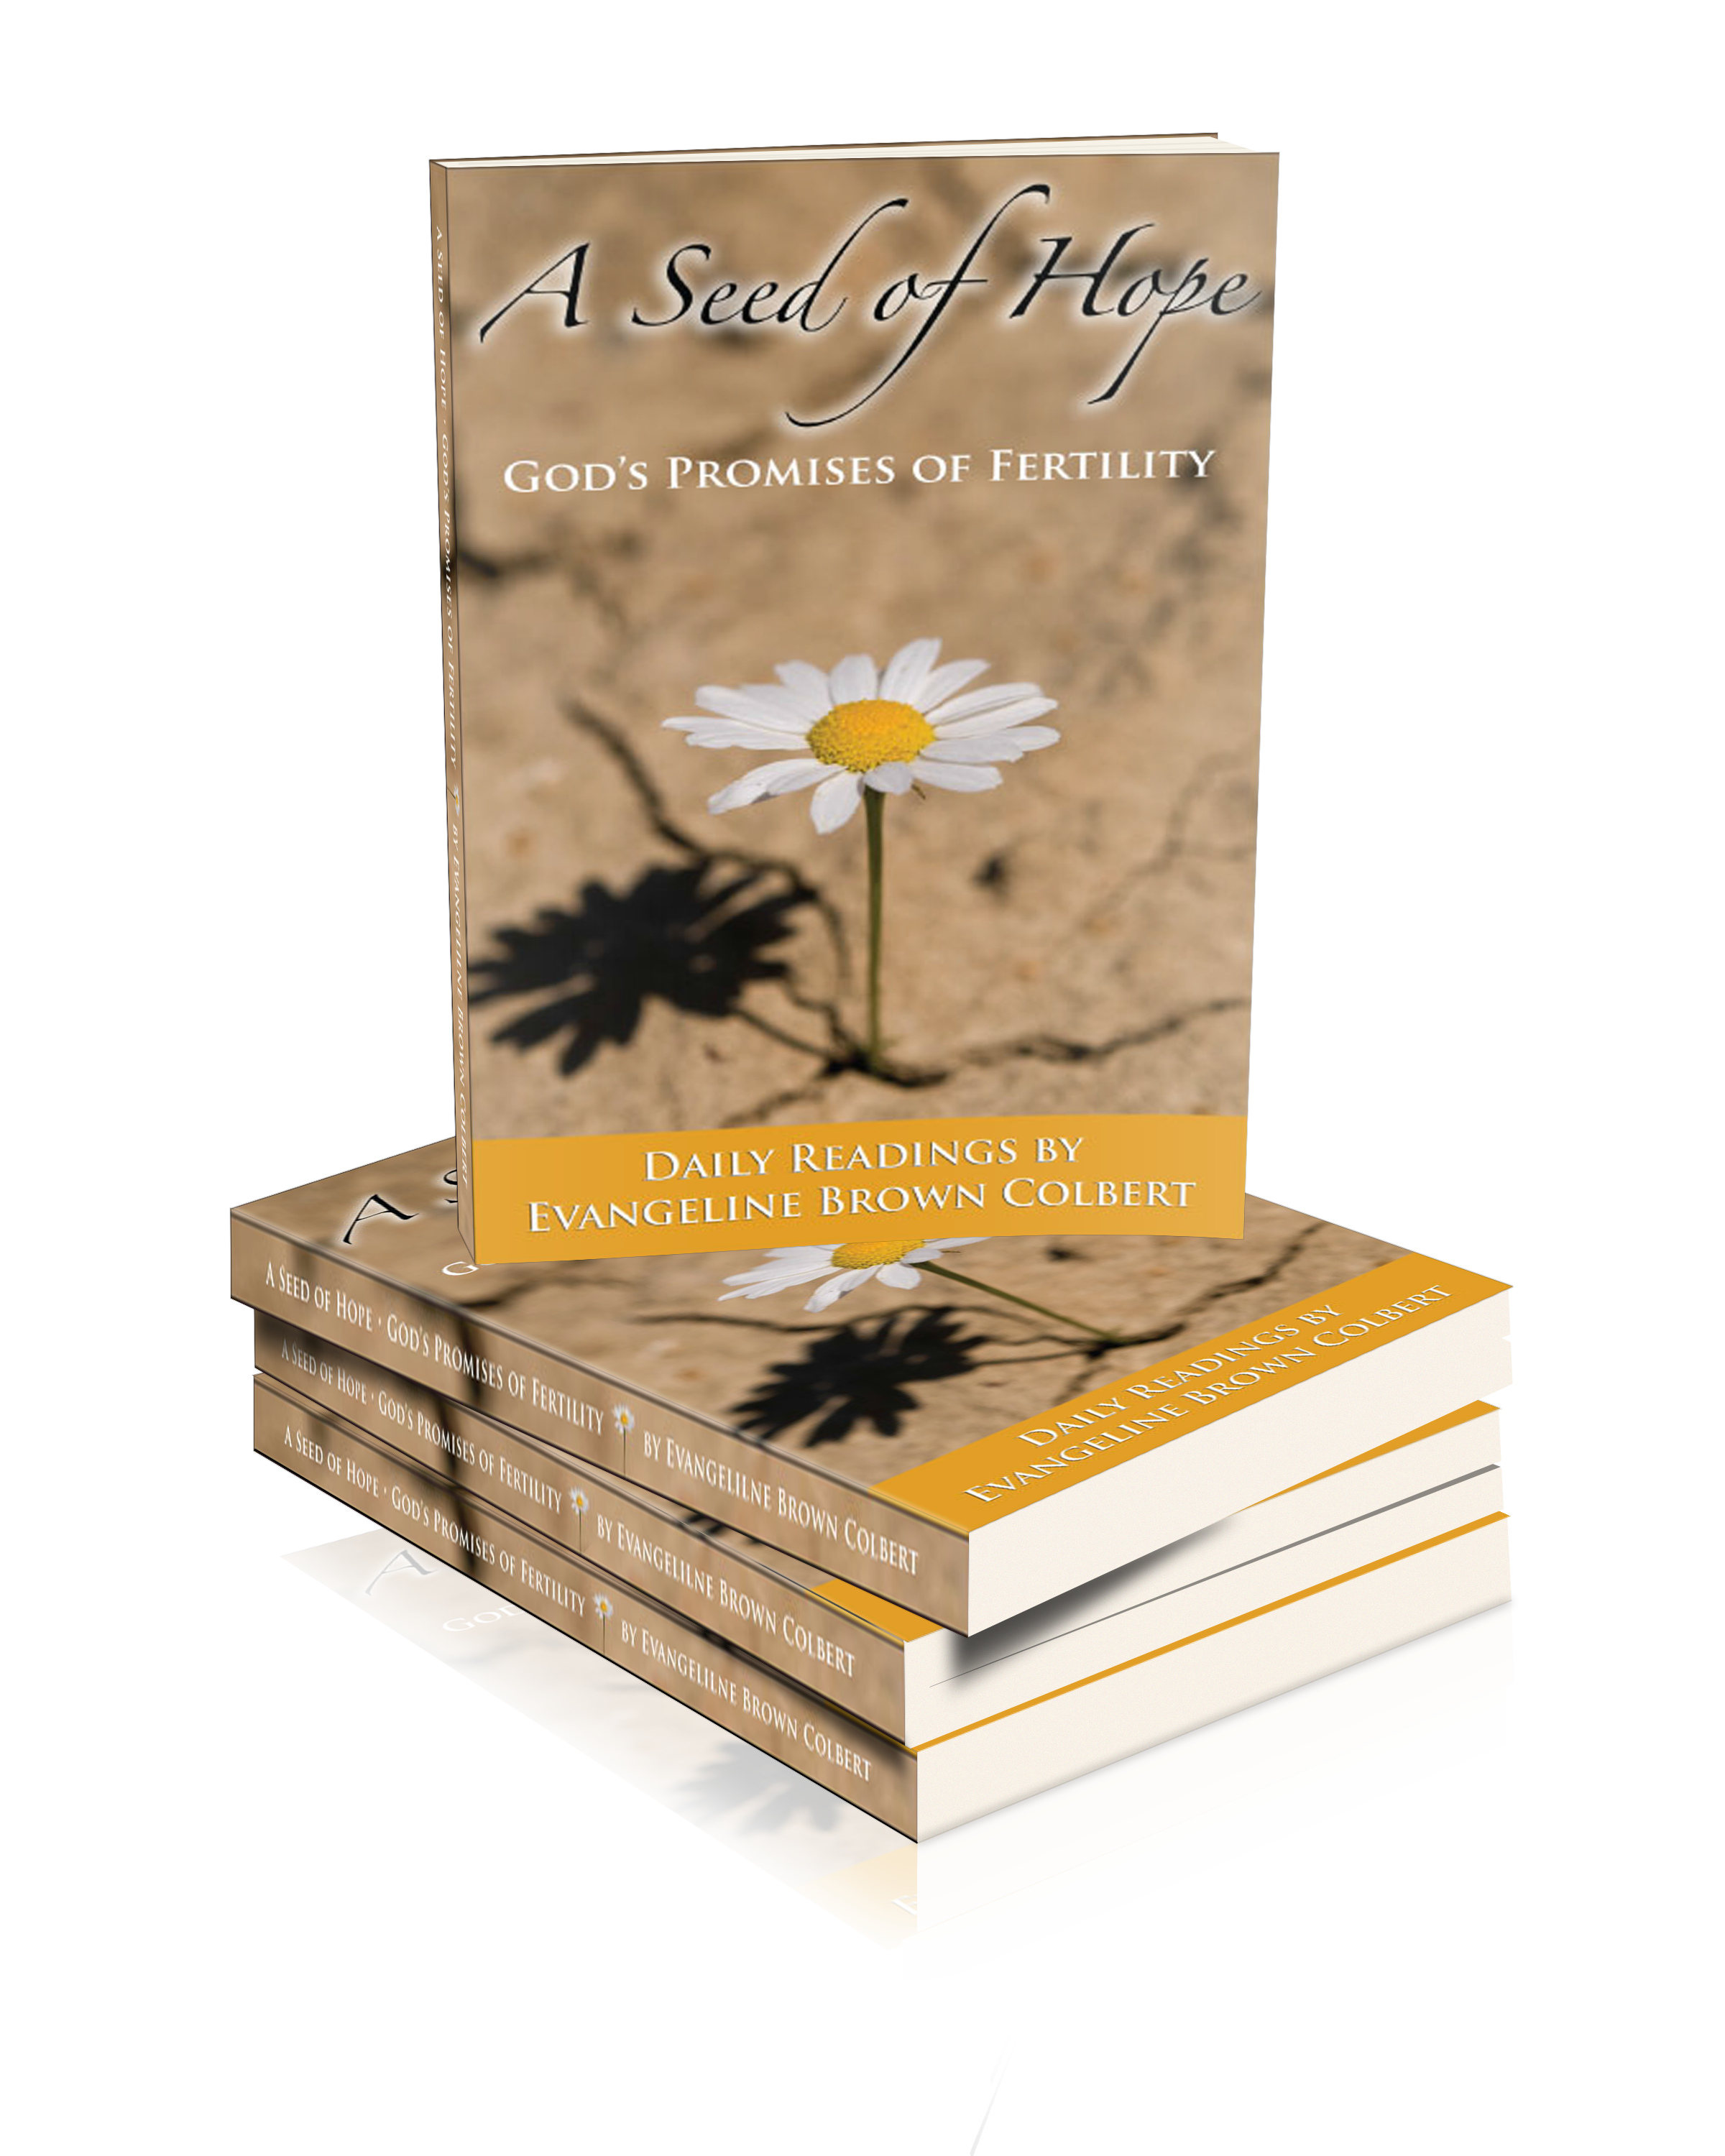 Evangeline's Book---A Seed of Hope: God's Promises of Fertility